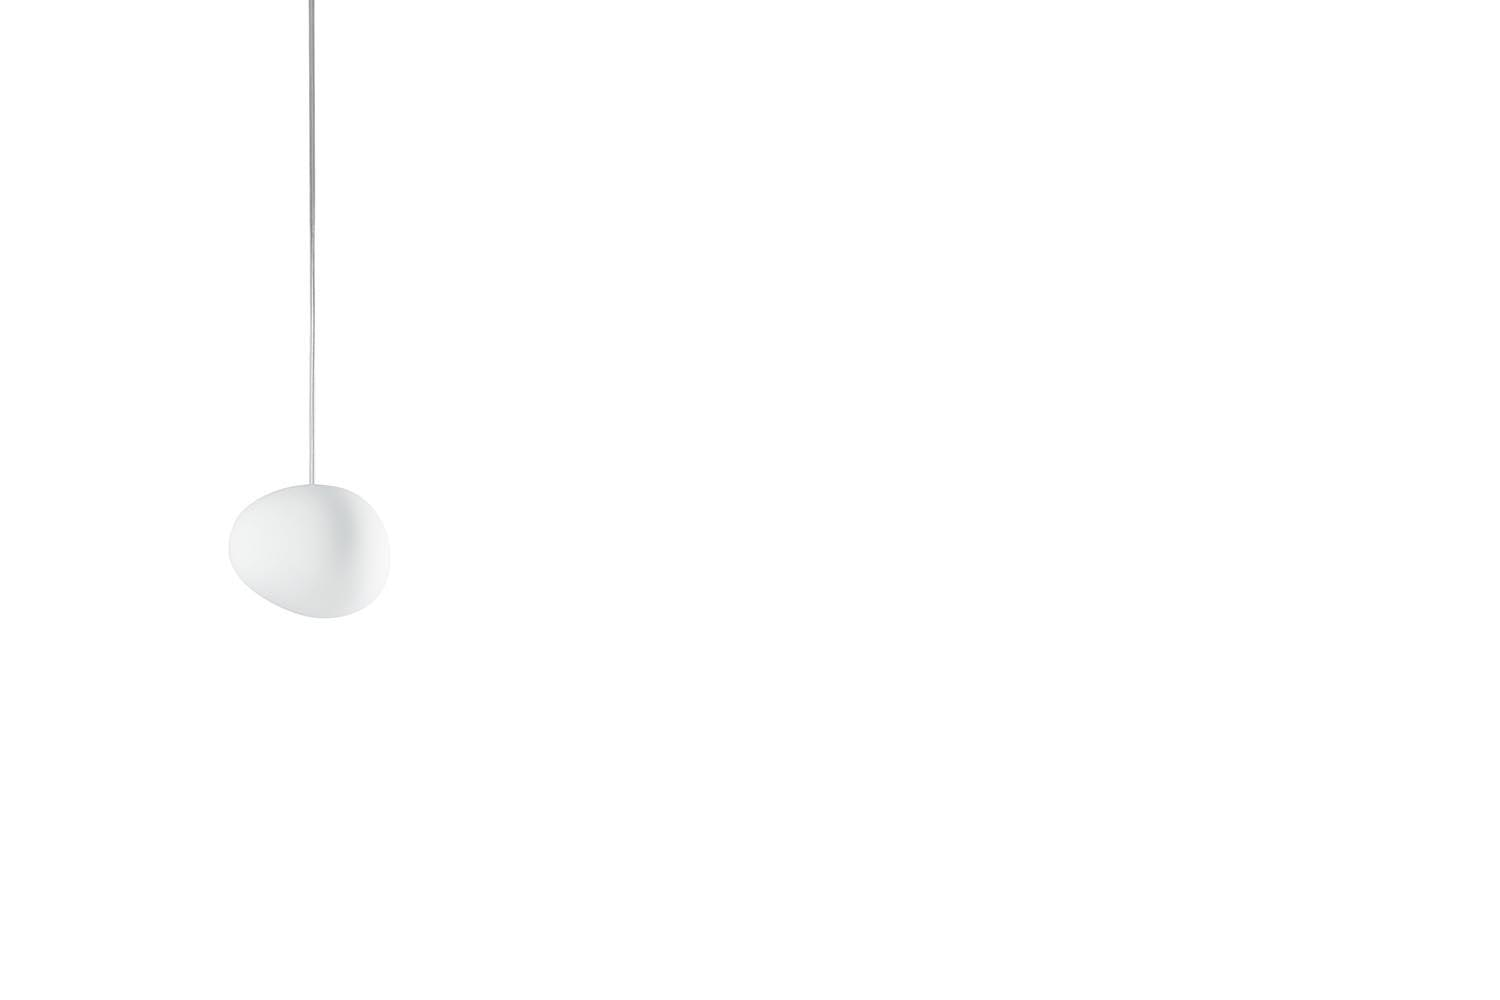 Gregg Piccola Suspension Lamp by Ludovica & Roberto Palomba for Foscarini